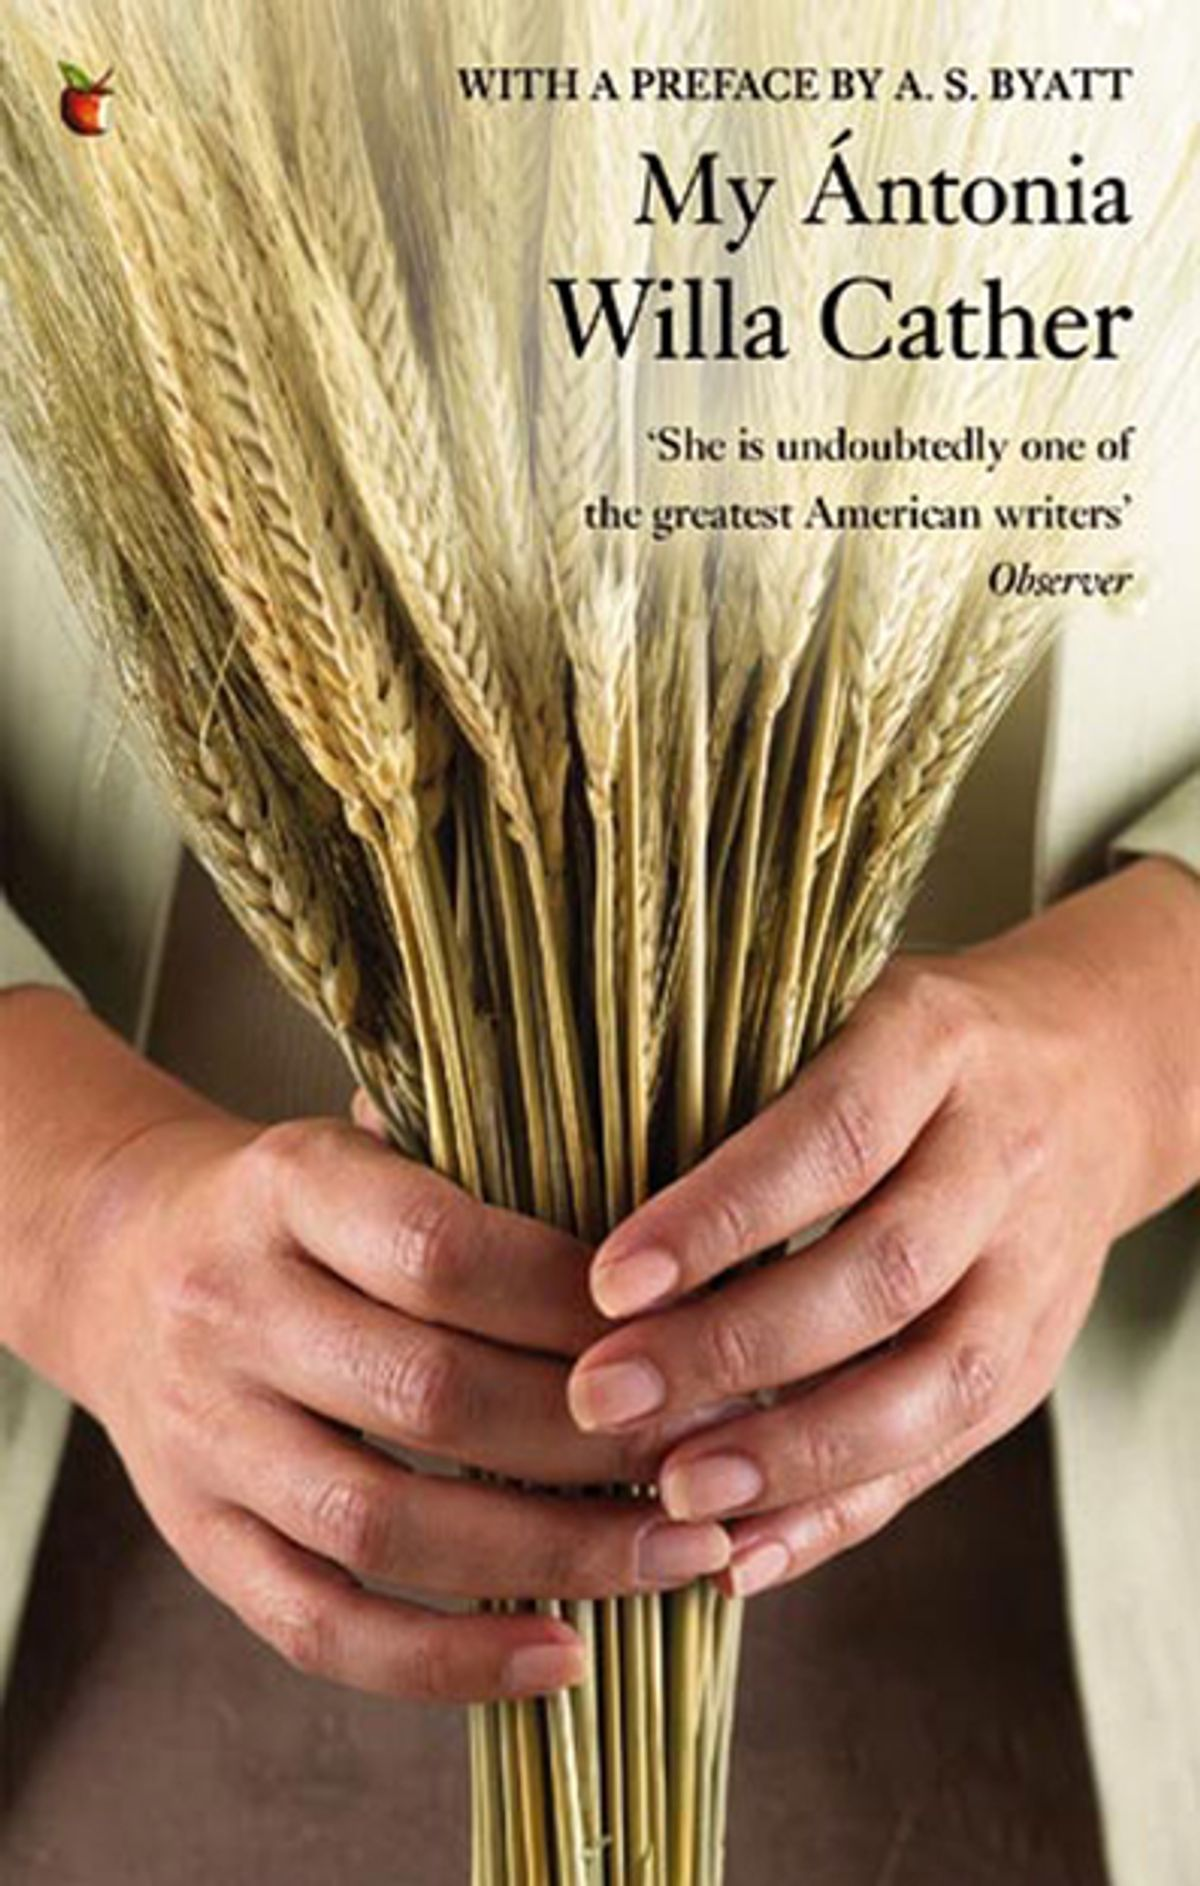 an overview of my antonia a novel by willa carther Immediately download the willa cather summary, chapter-by-chapter analysis, book notes, essays, quotes, character descriptions, lesson plans, and more - everything you need for studying or teaching willa cather.